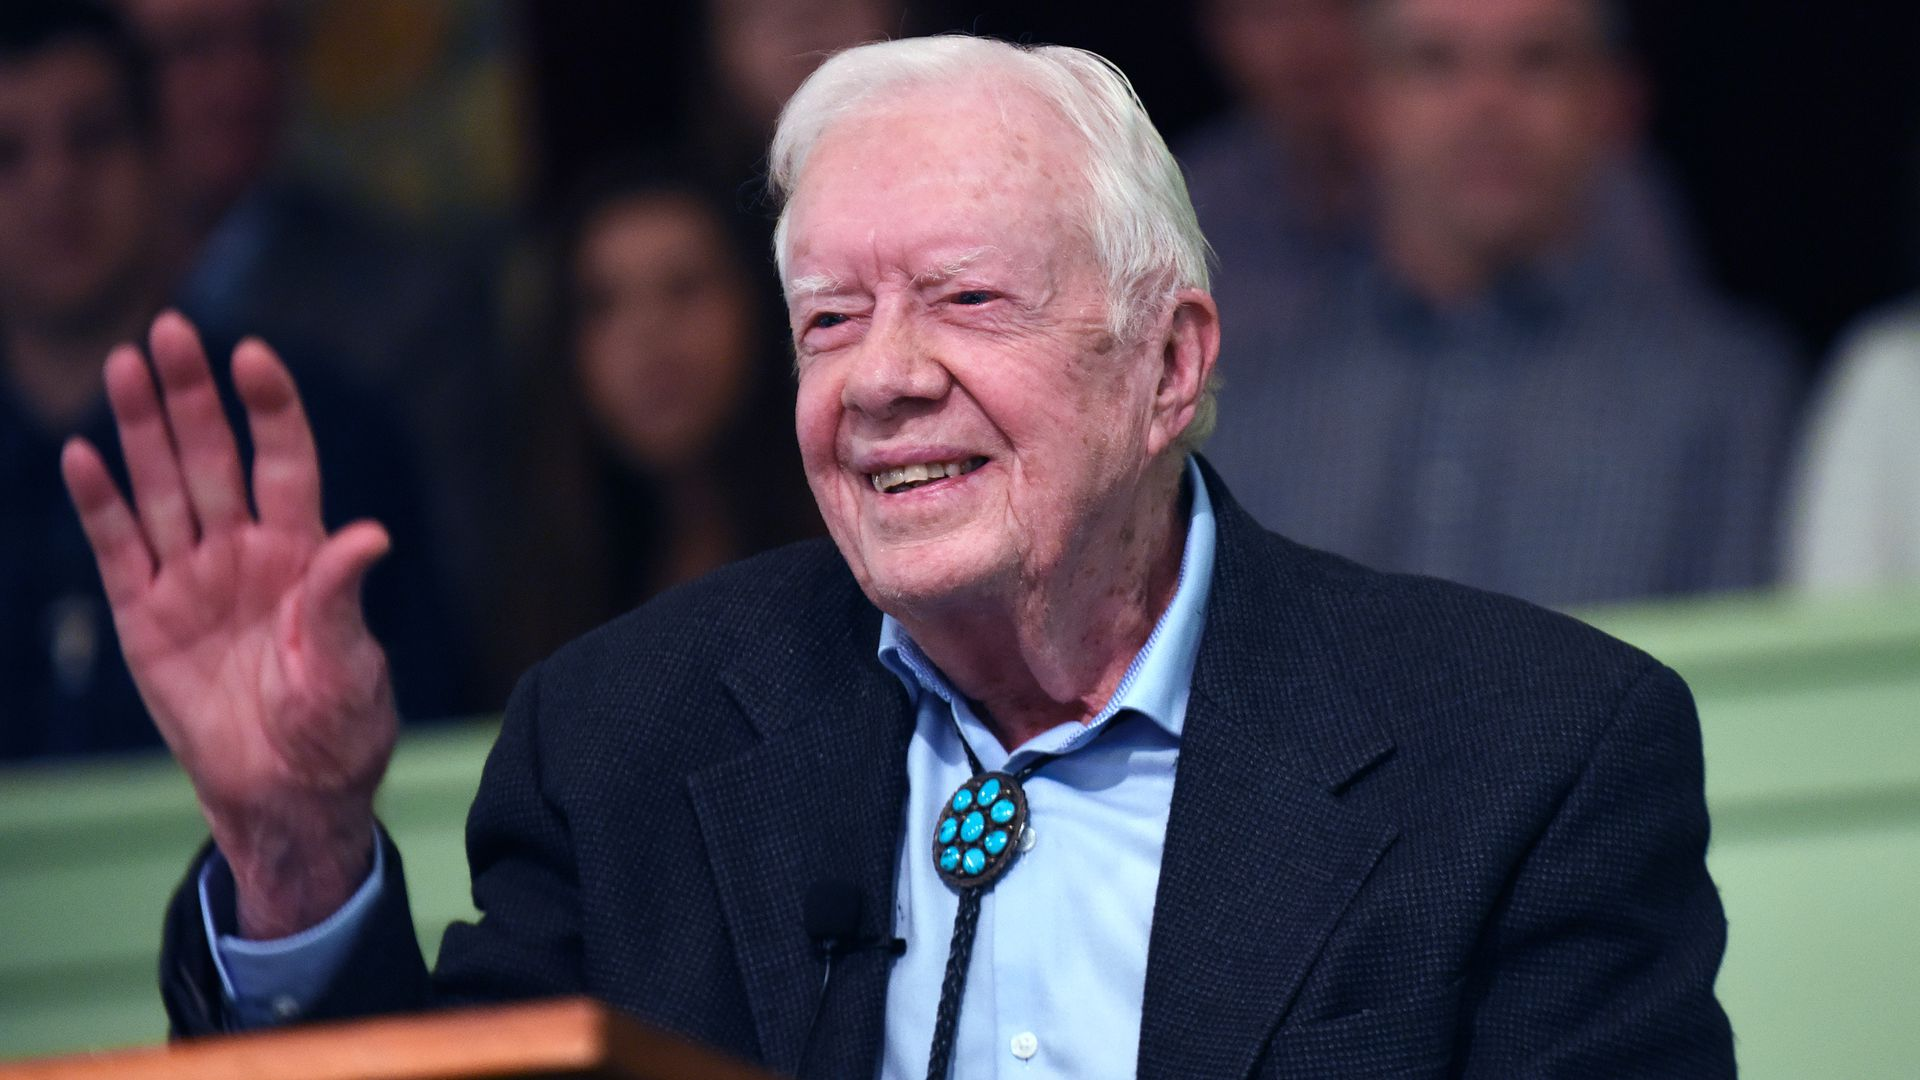 Jimmy Carter at his church waving to people.